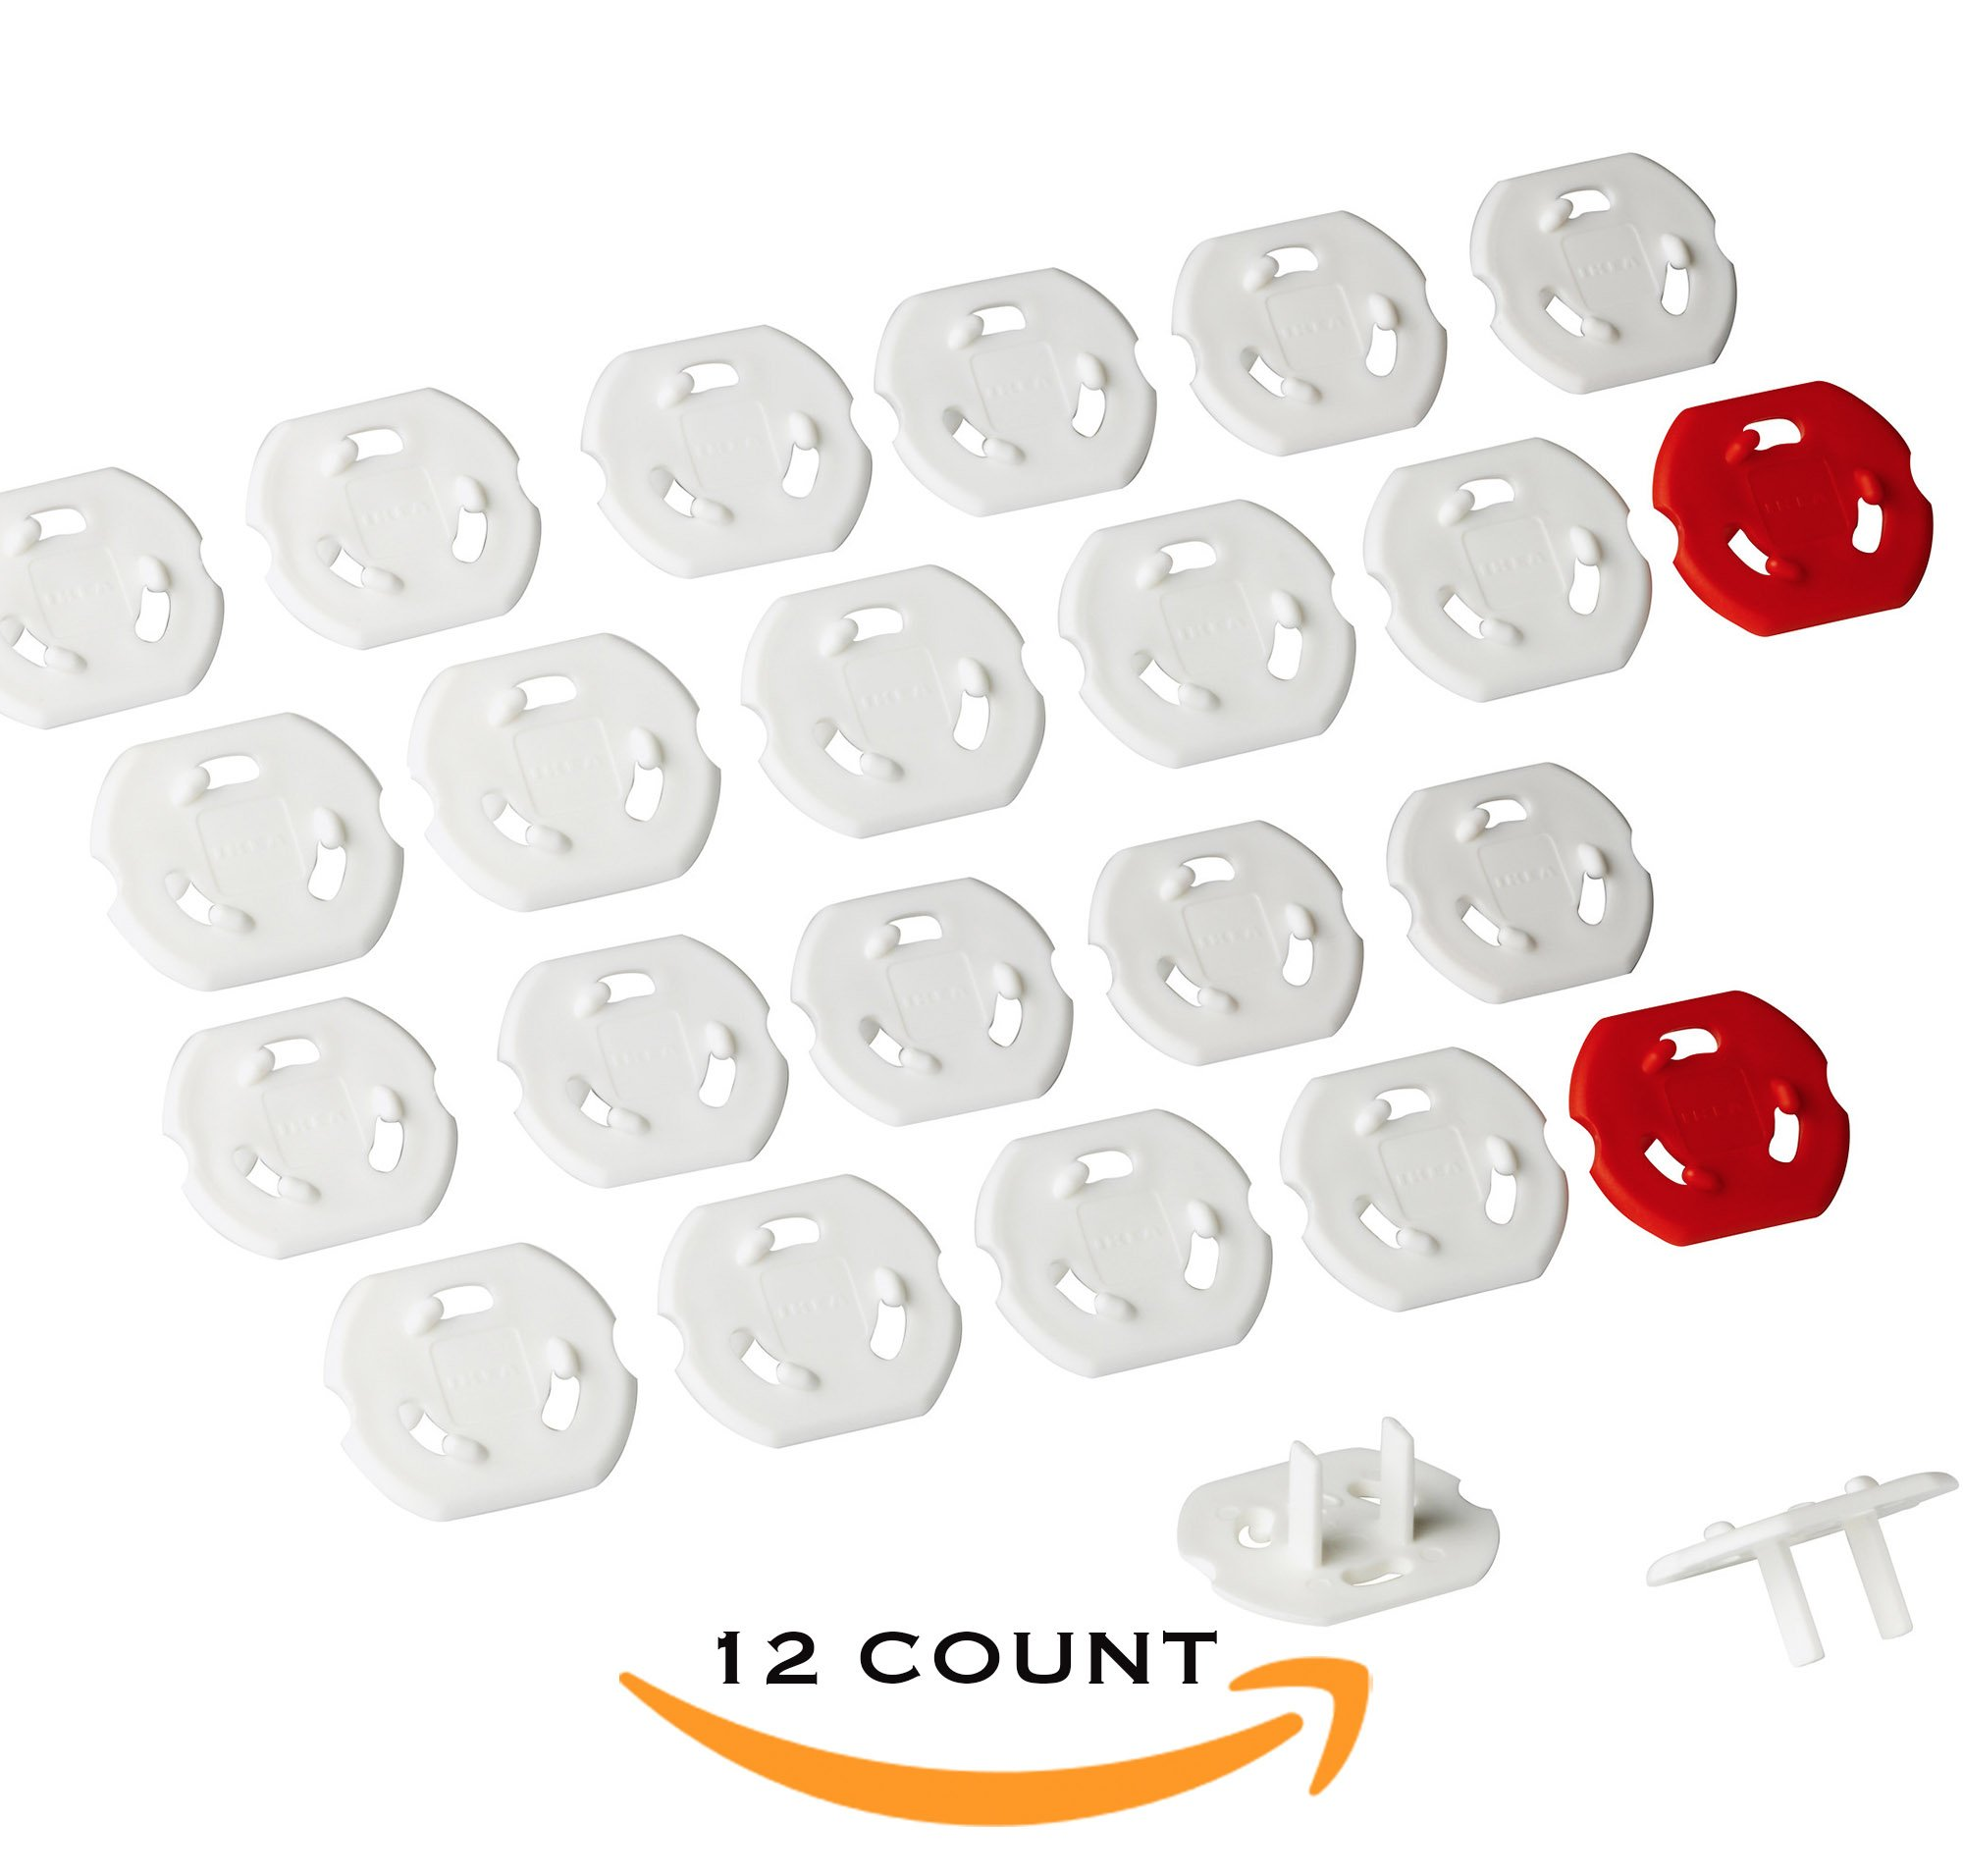 IKEA Patrull 12 Pieces Premium Quality Childproof Outlet Covers New & Improved Baby Safety Plug Covers – Durable & Steady US Outlet (24 Count)